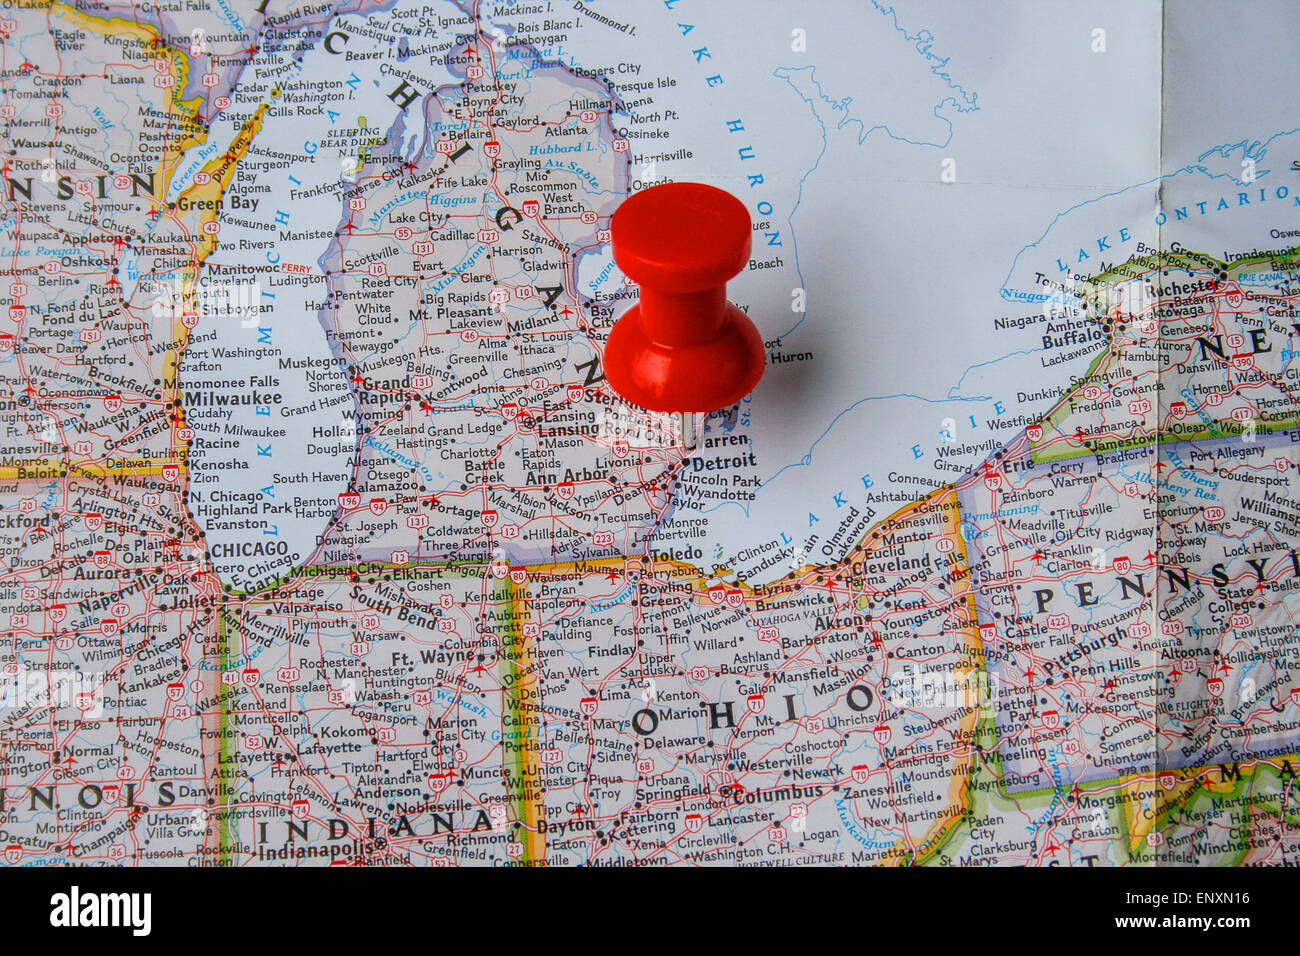 Red Pin On Map Of Usa Pointing At Detroit Michigan Stock Photo